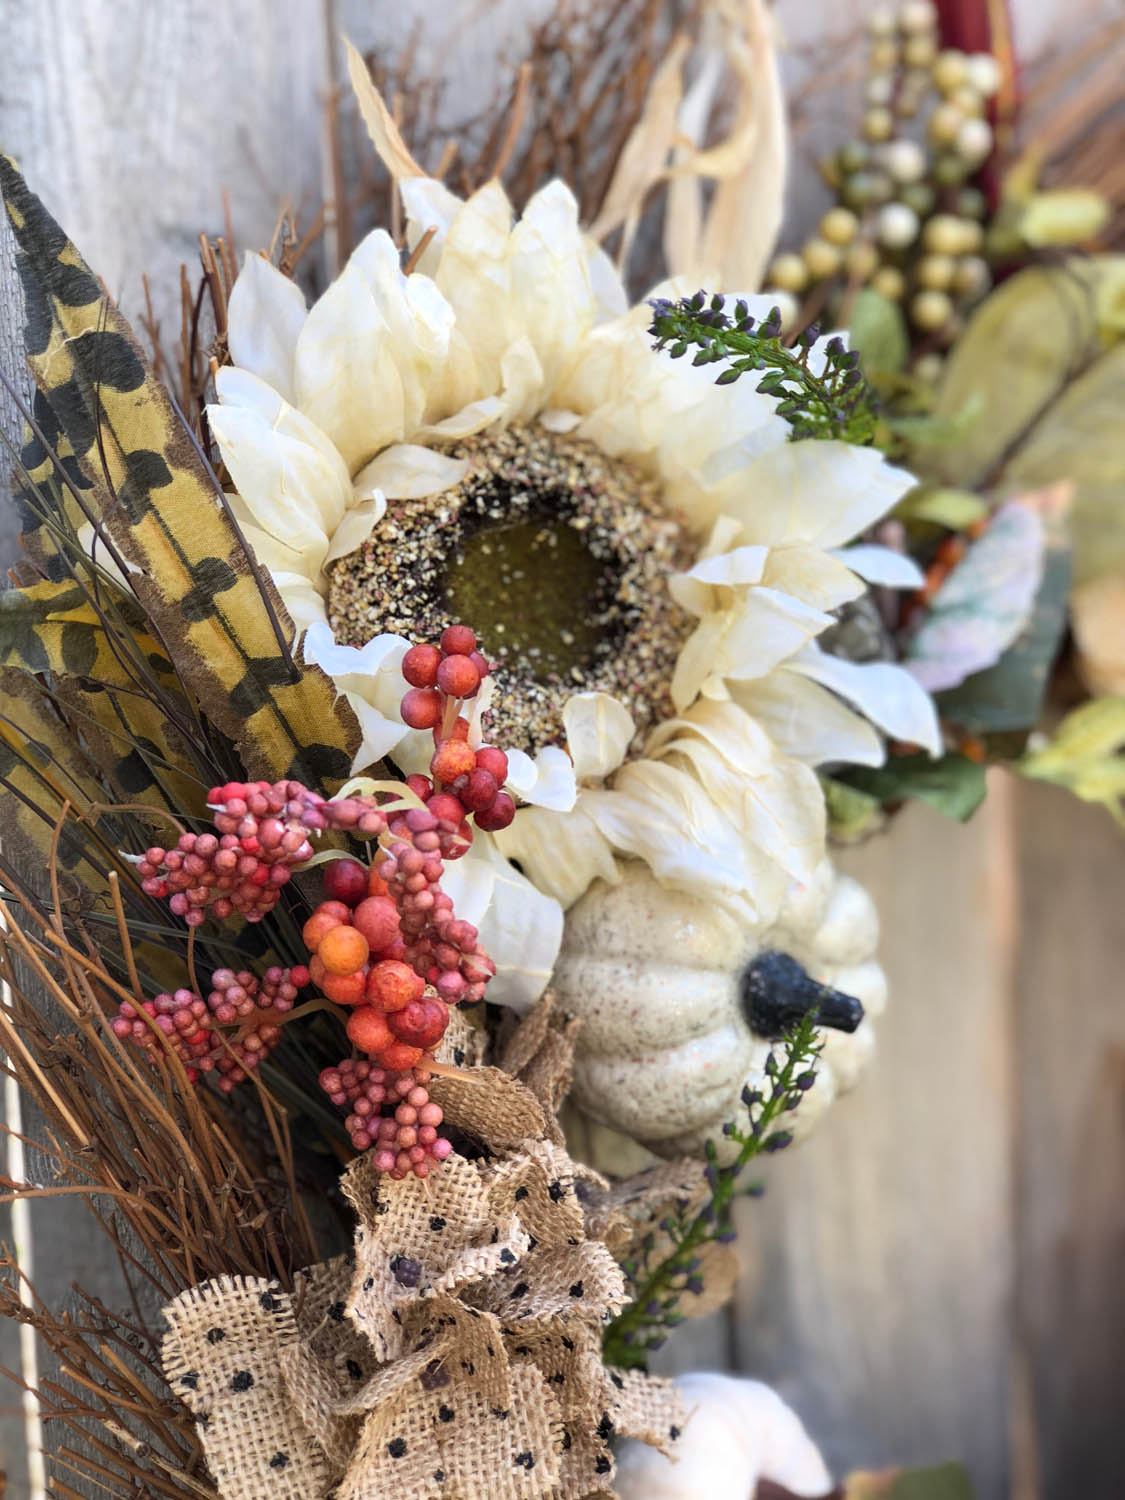 Detail of autumn wreath hanging on wooden fence outside.